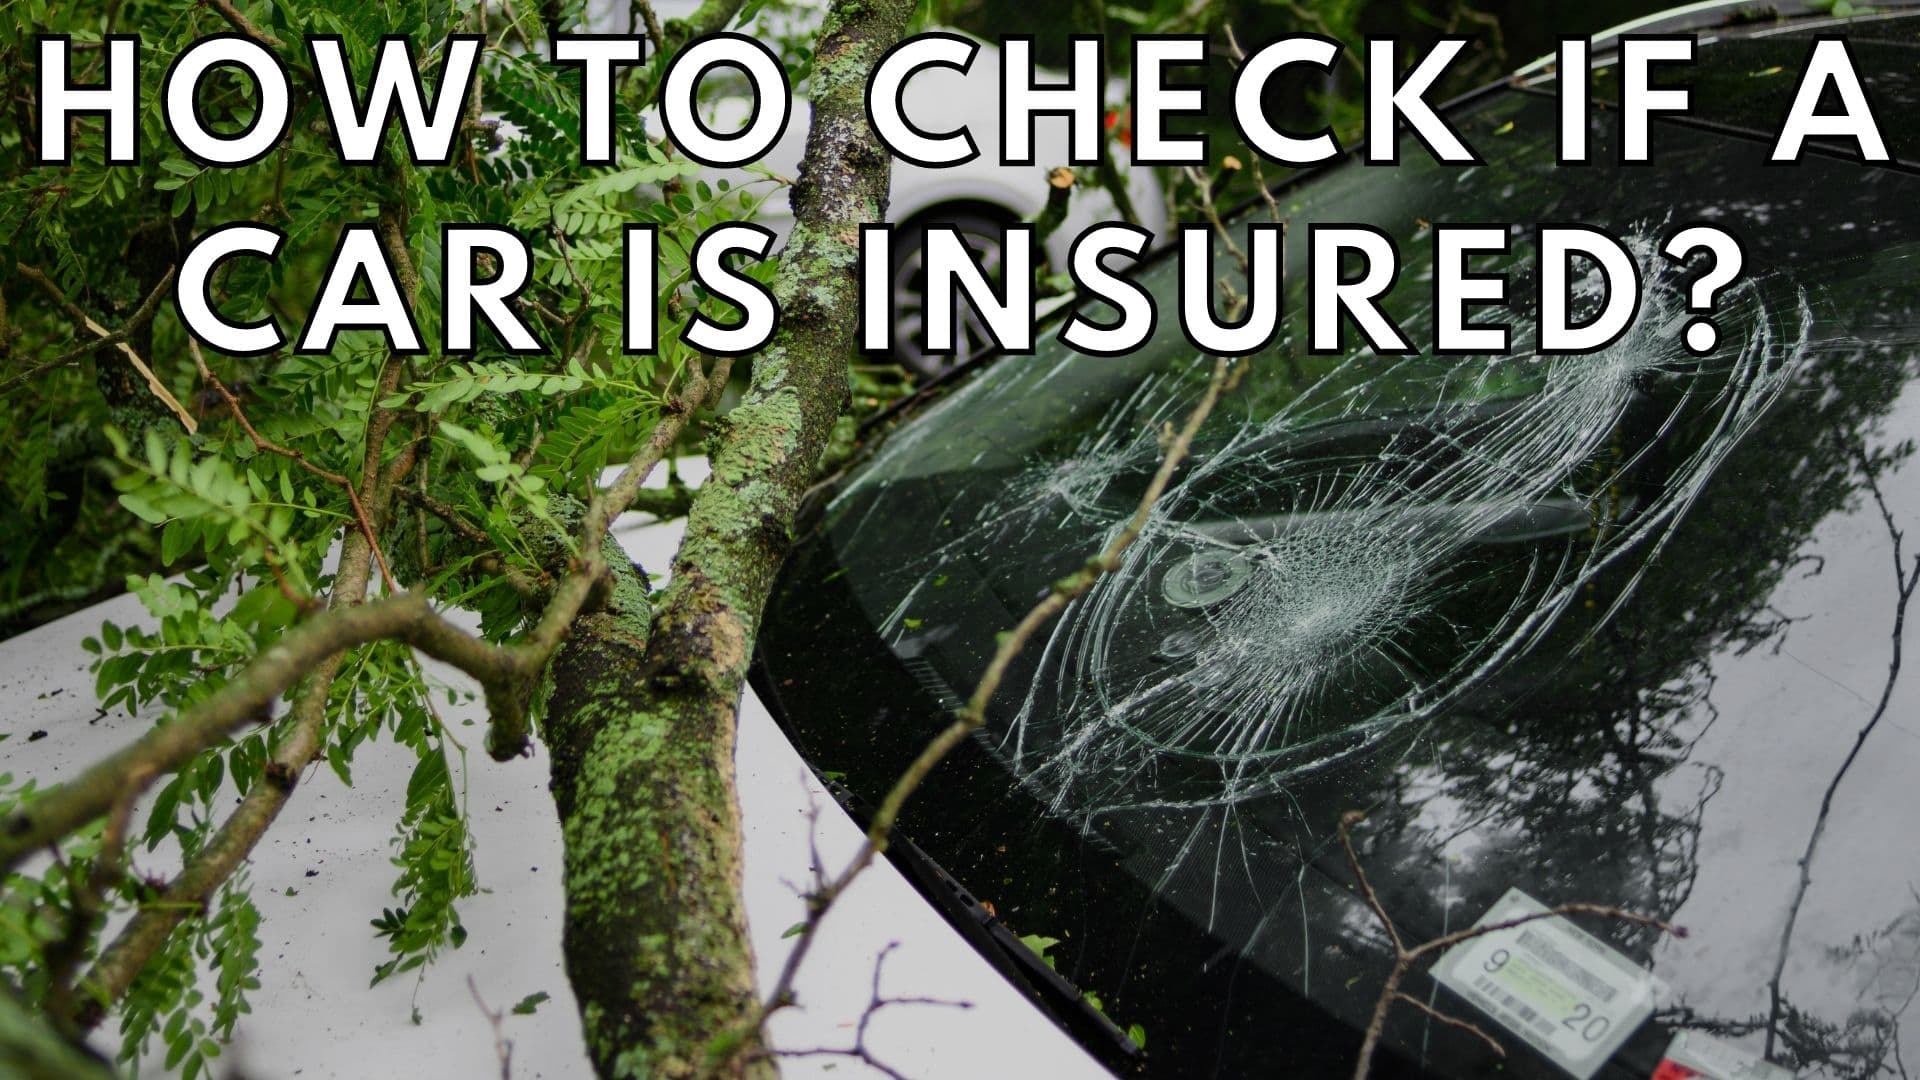 How to check if a car is insured?